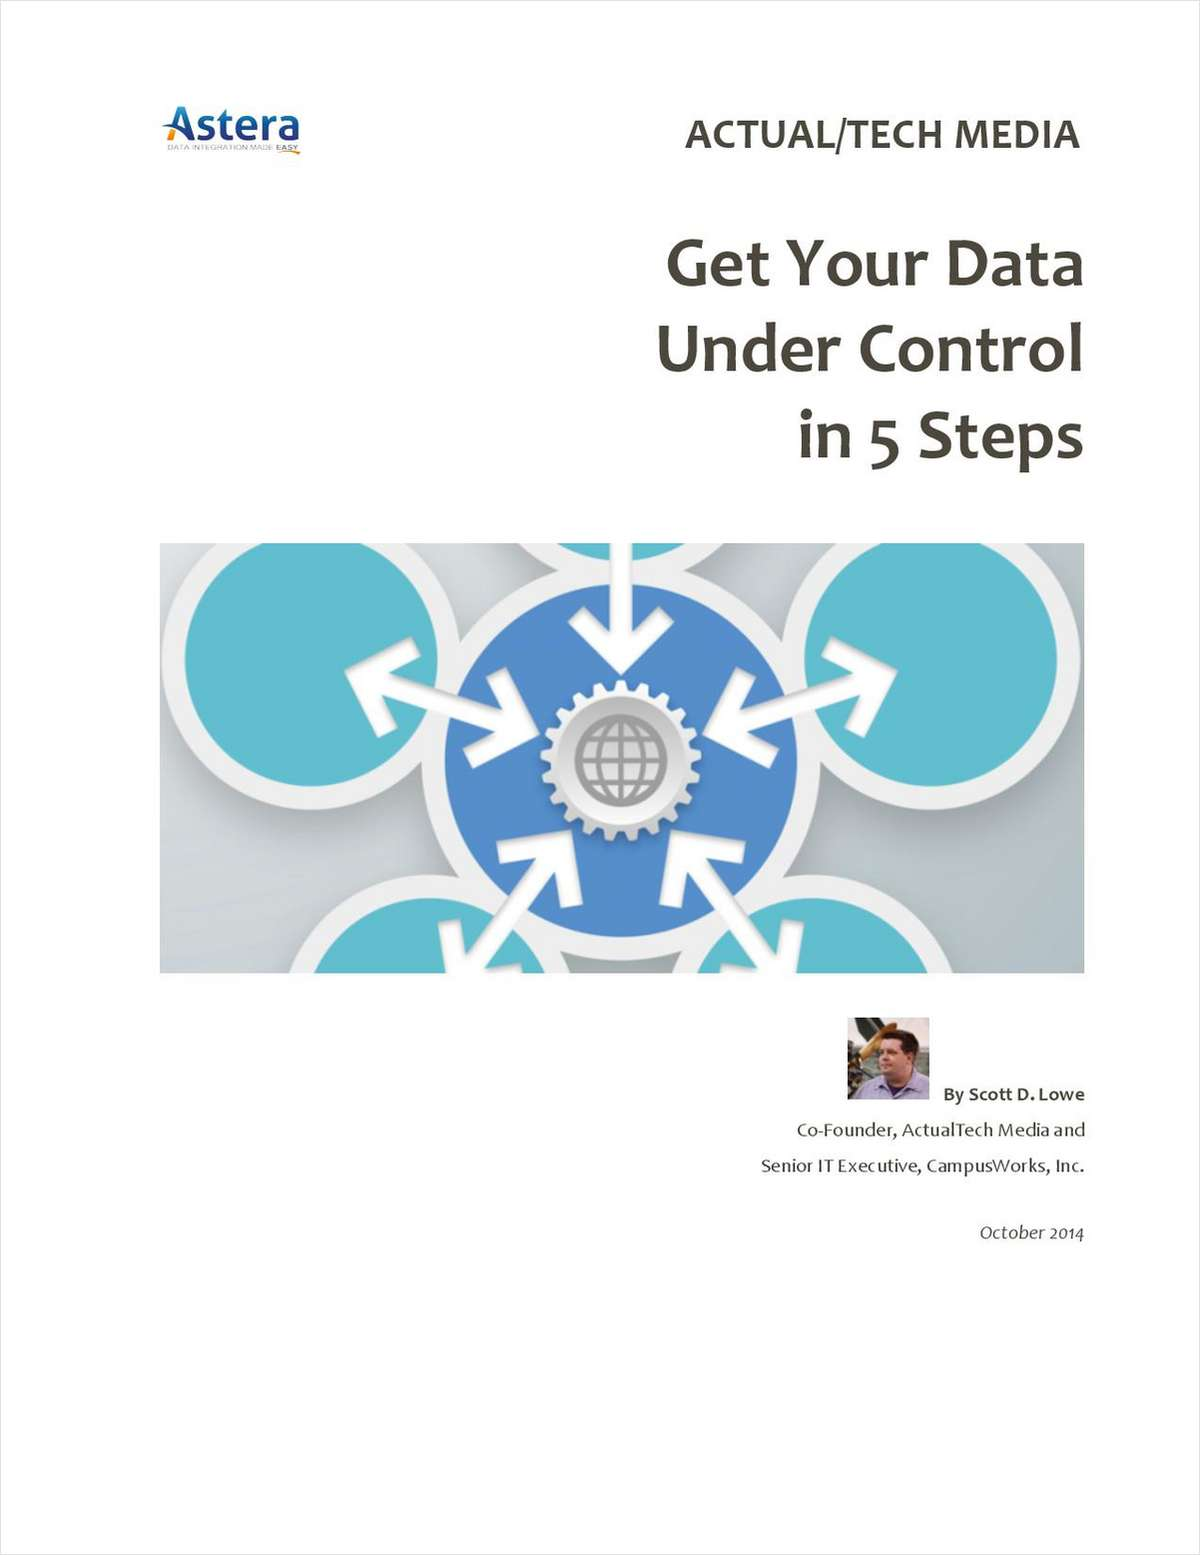 Get Your Data Under Control in 5 Steps